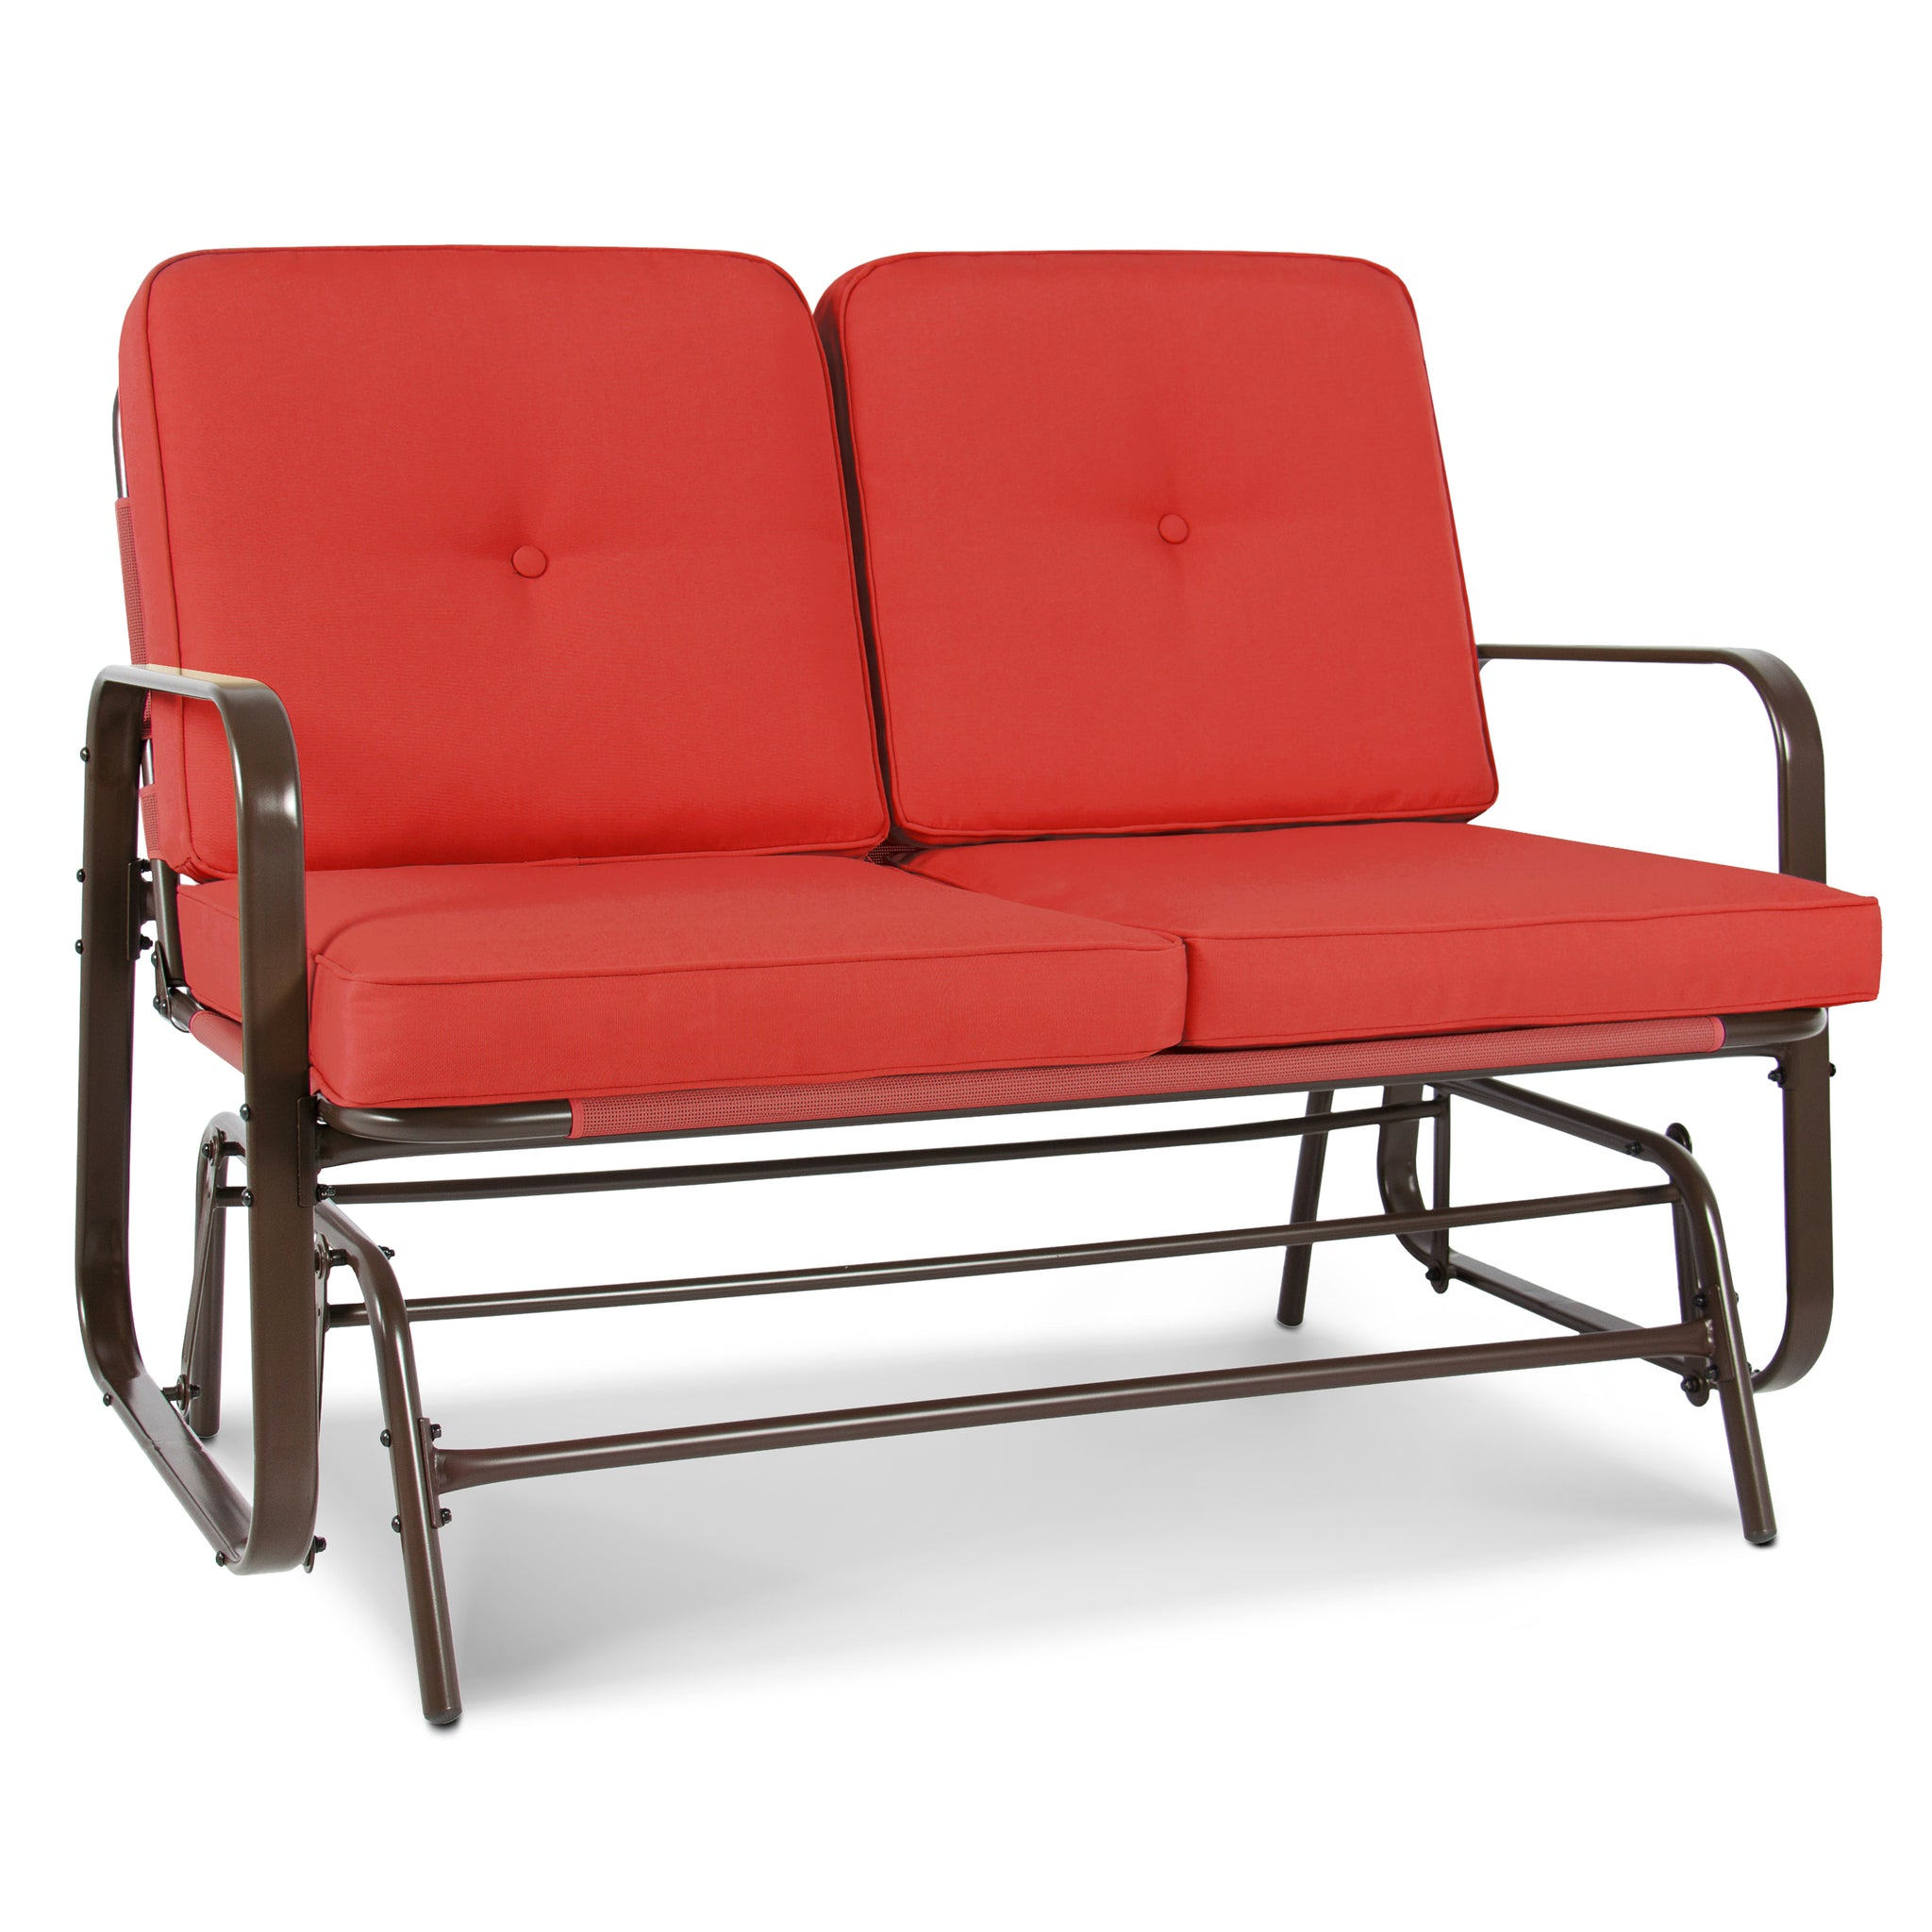 2 Person Loveseat Glider Rocking Chair Bench   Red Orange